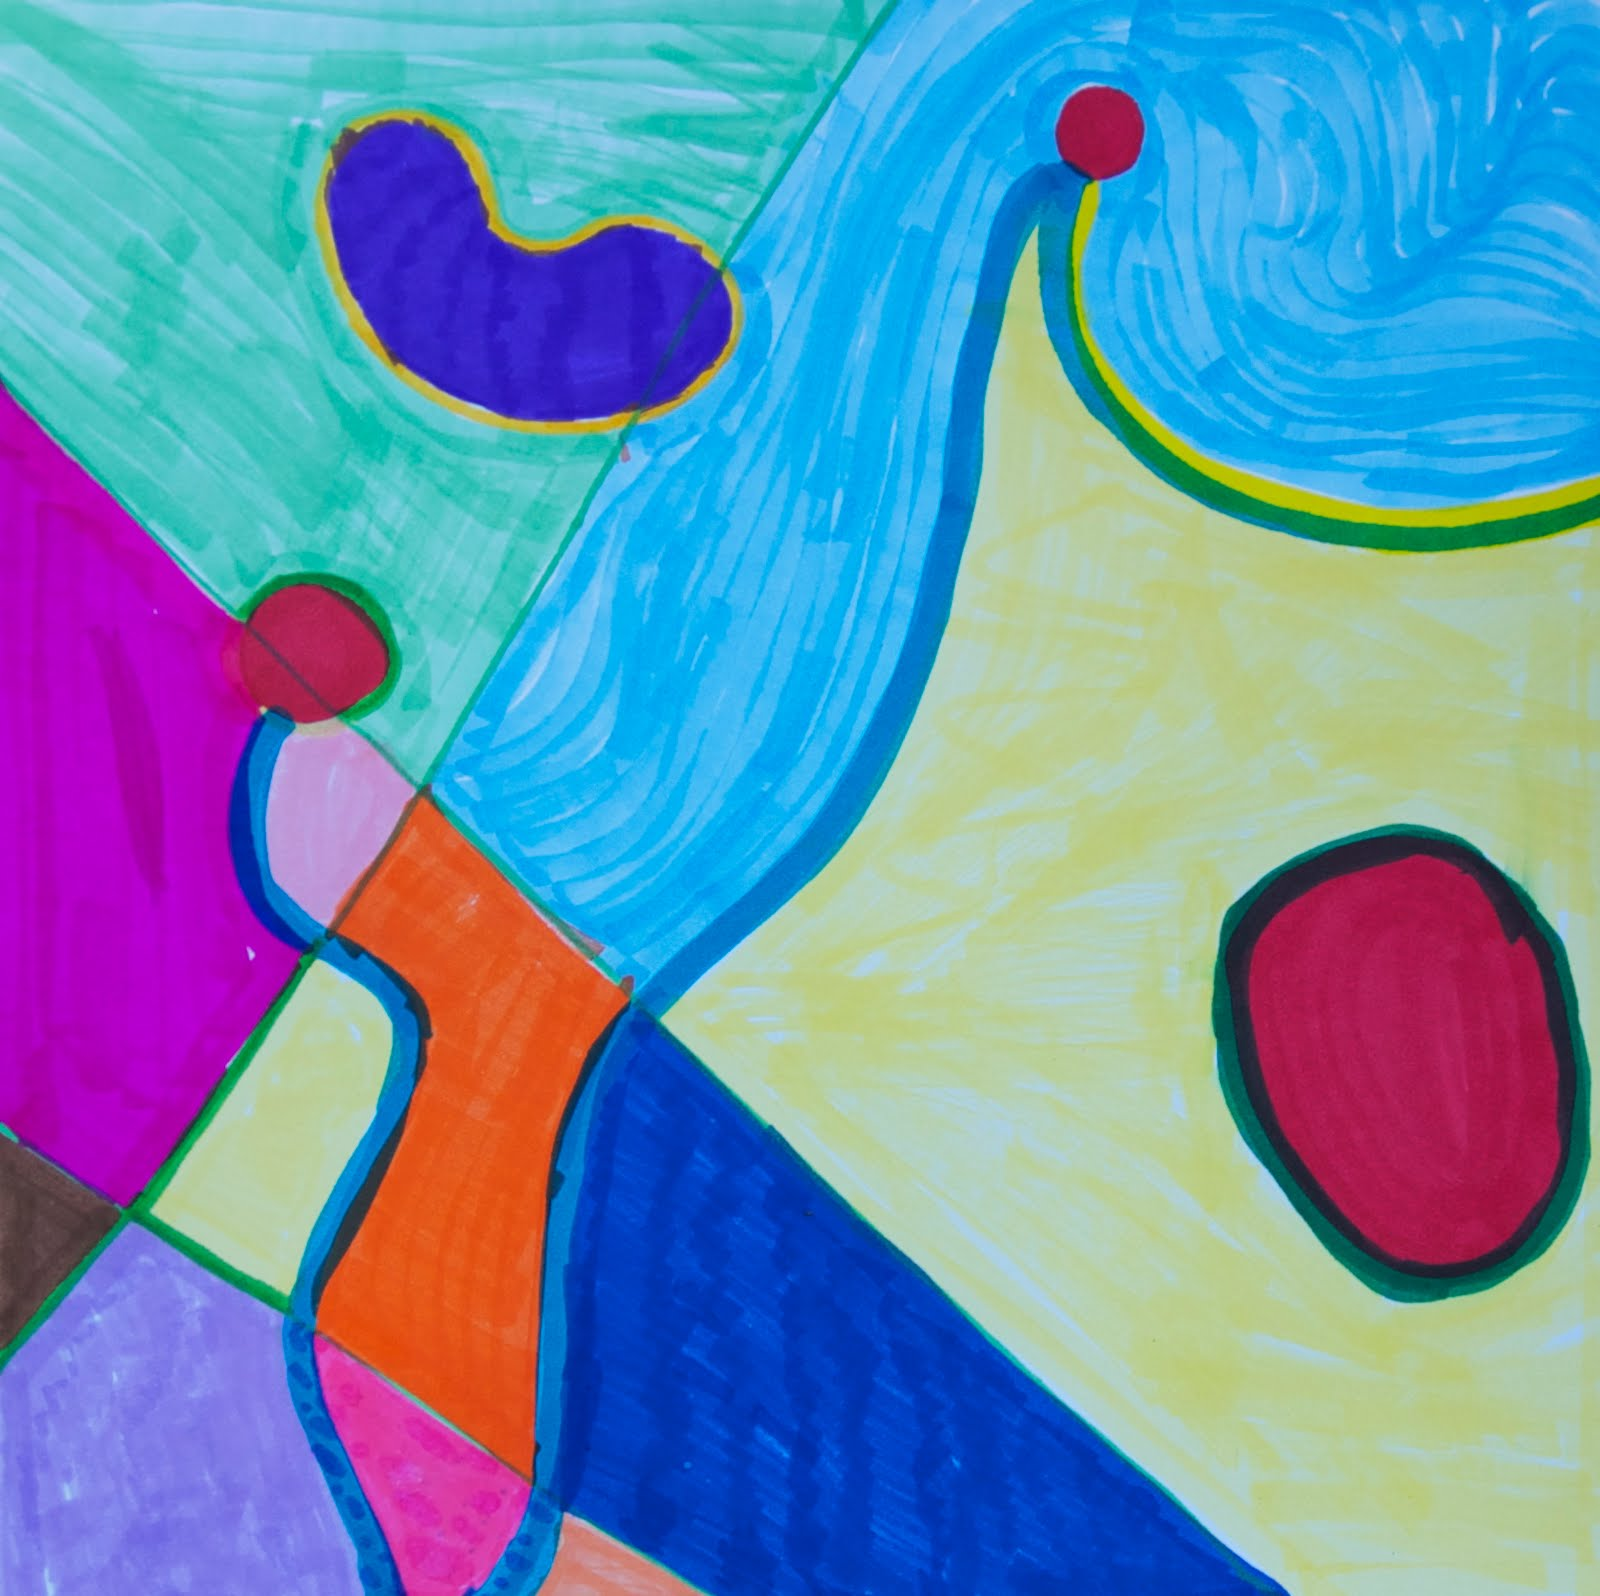 Abstract Art Introduction